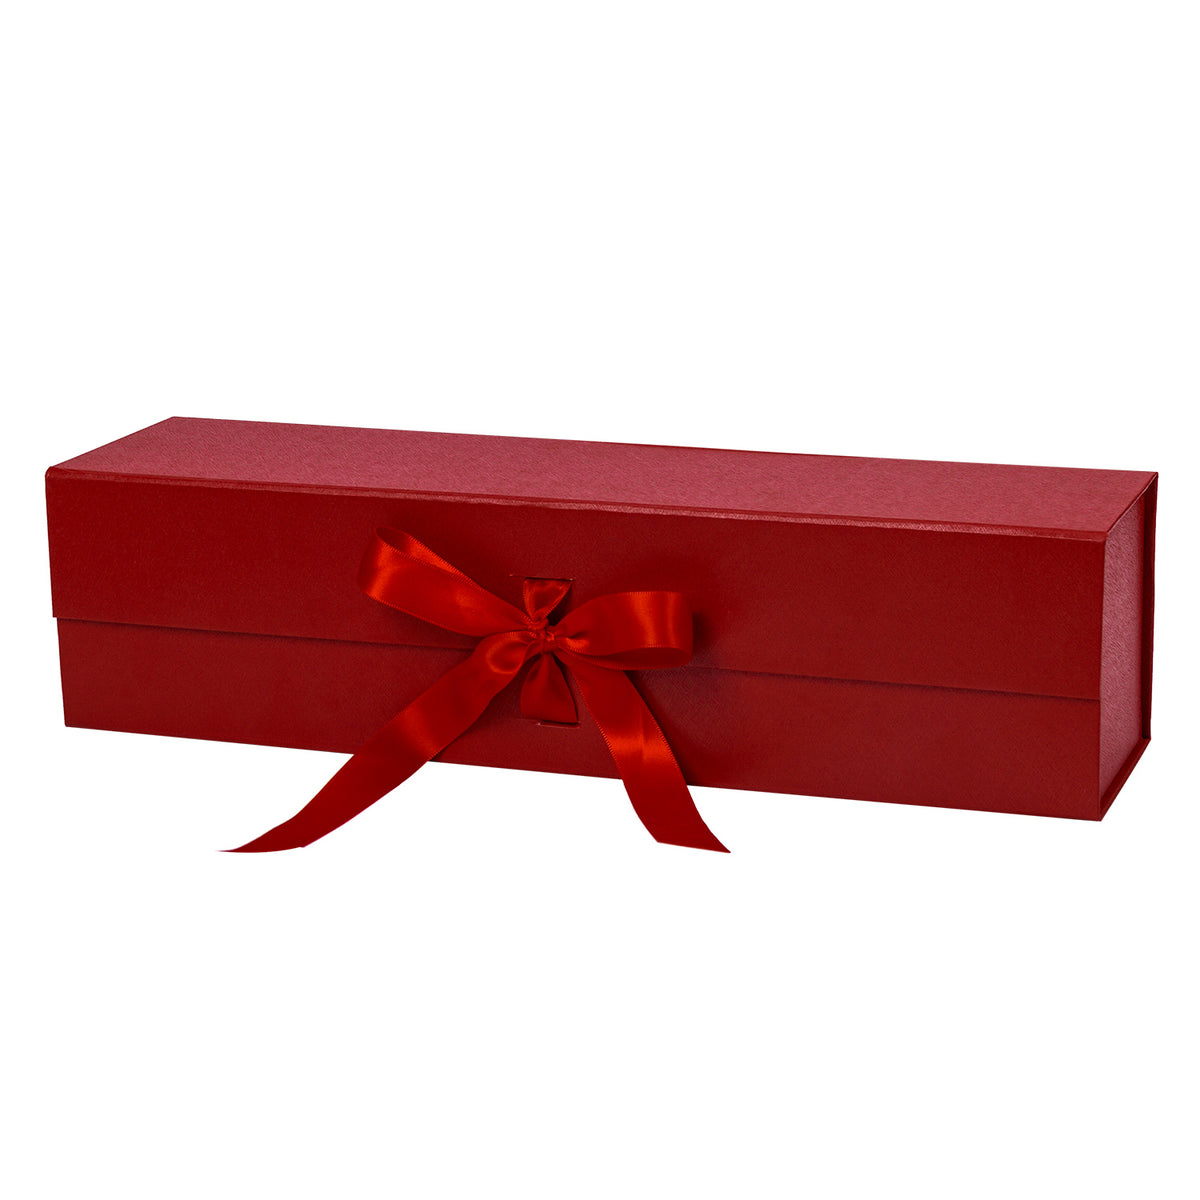 Wrapaholic-2Pcs-Red-Gift- Box-with-Satin-Ribbon-Gift-Boxes-with-Magnetic-Closure-1